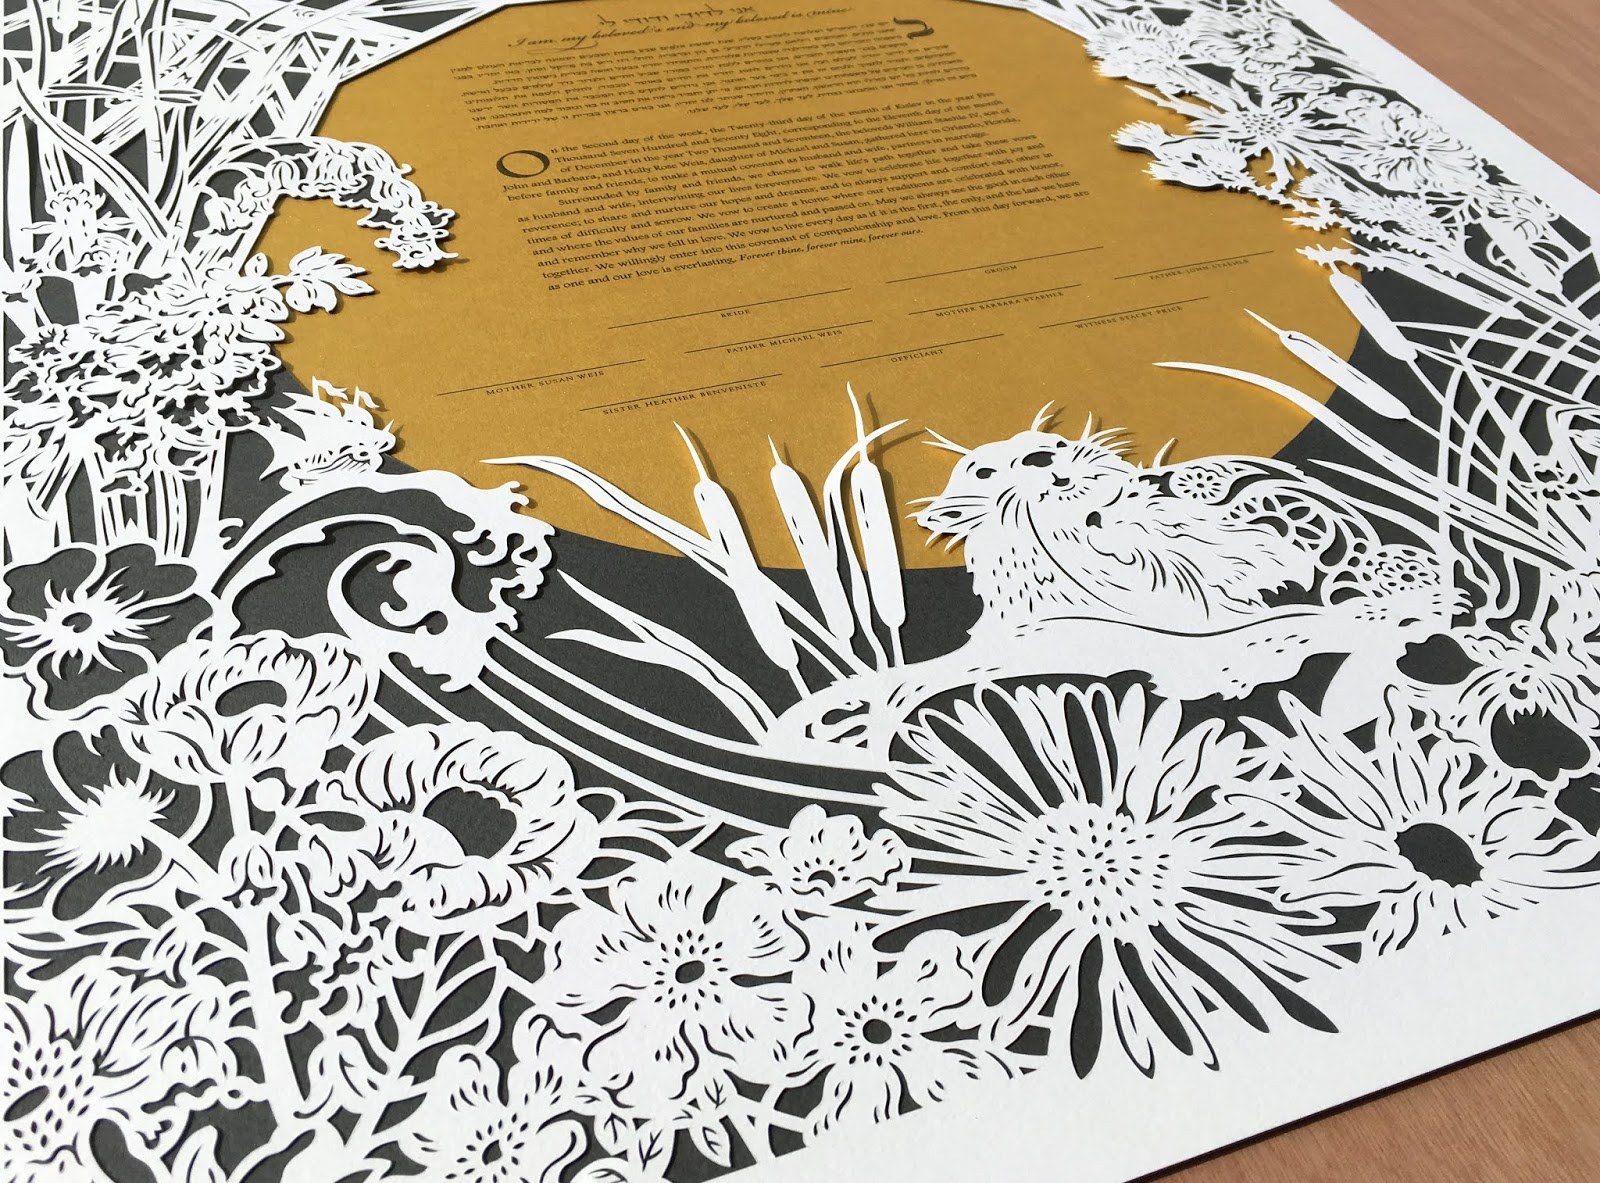 custom papercut for wedding featuring adventuring, fairytale spirit of the loving couple